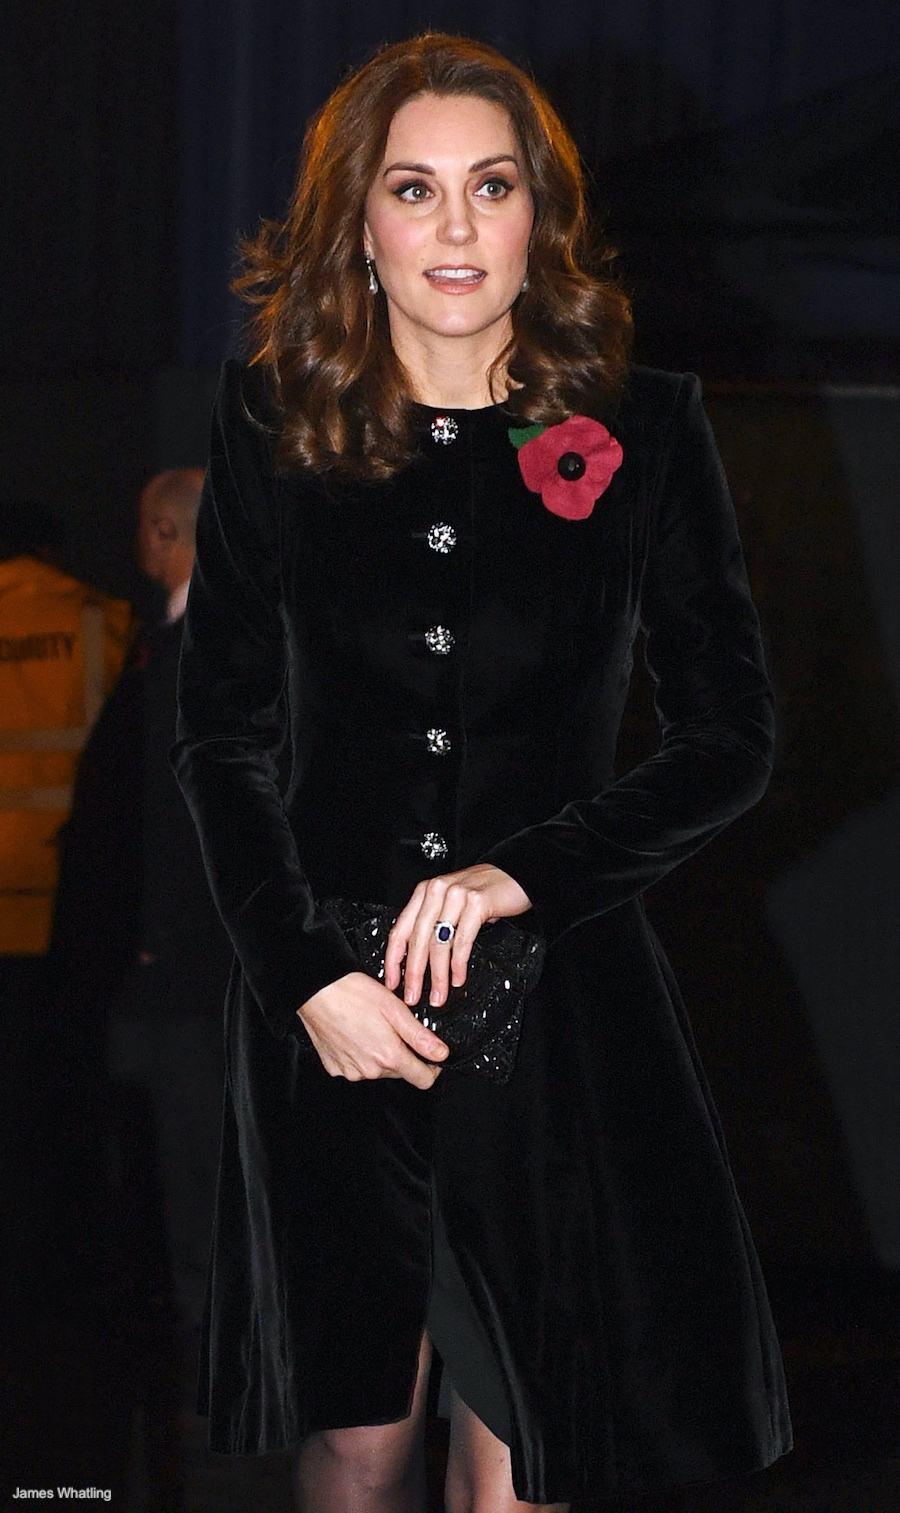 Kate Middleton at the 2017 Festival of Remembrance